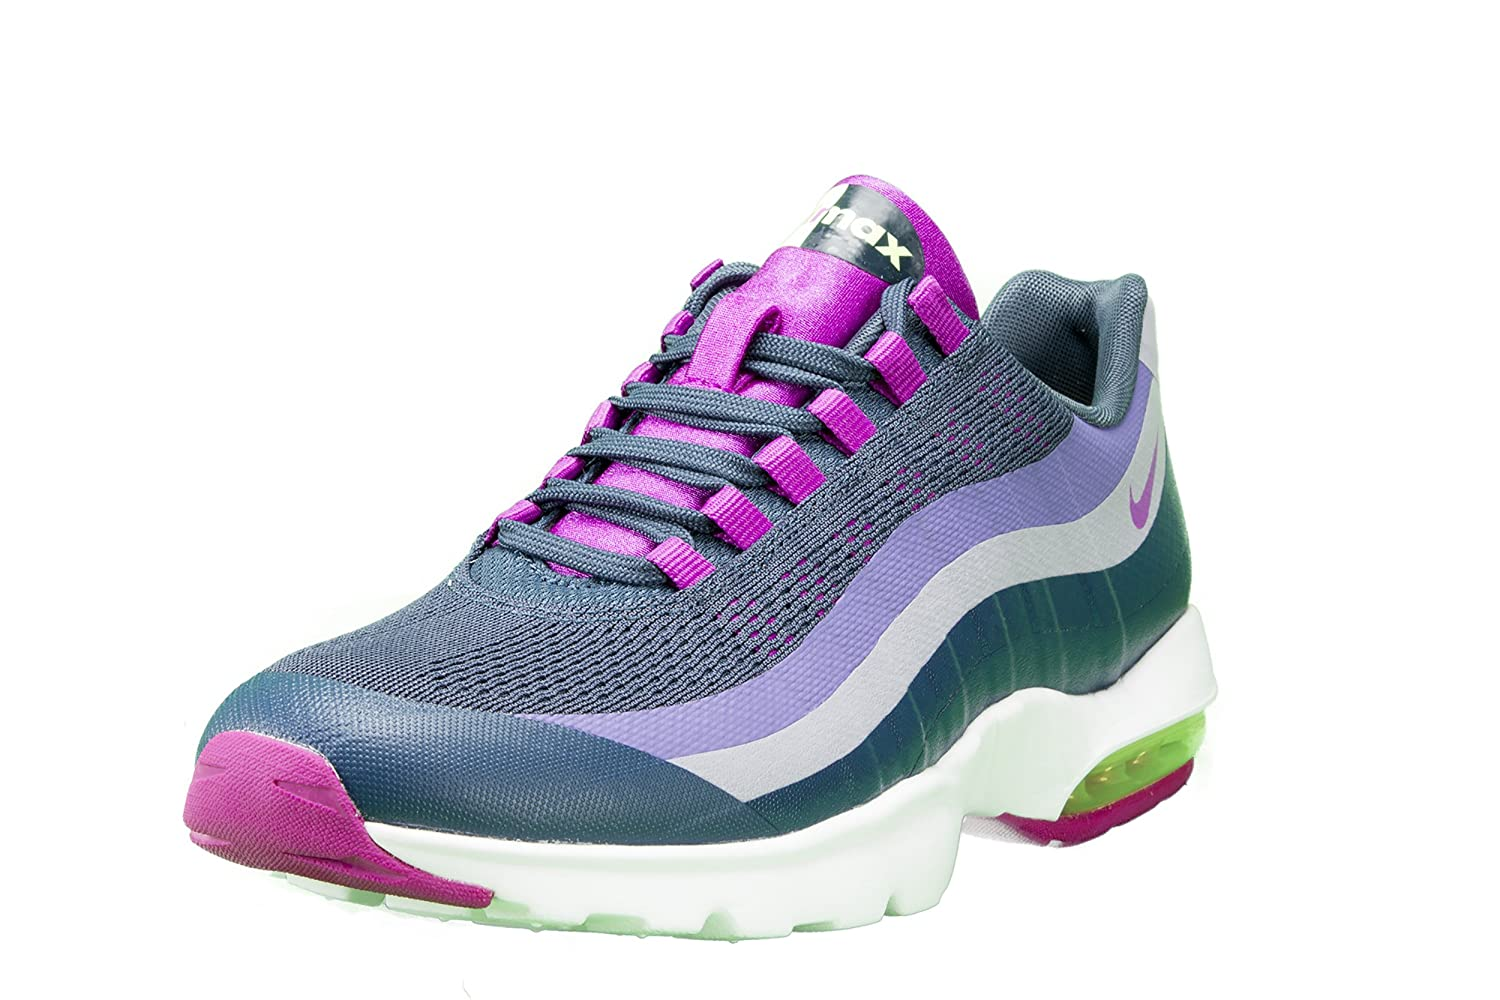 outlet store d11cc 92fbc Amazon.com | Nike Womens air max 95 Ultra Running Trainers 749212 Sneakers  Shoes | Road Running